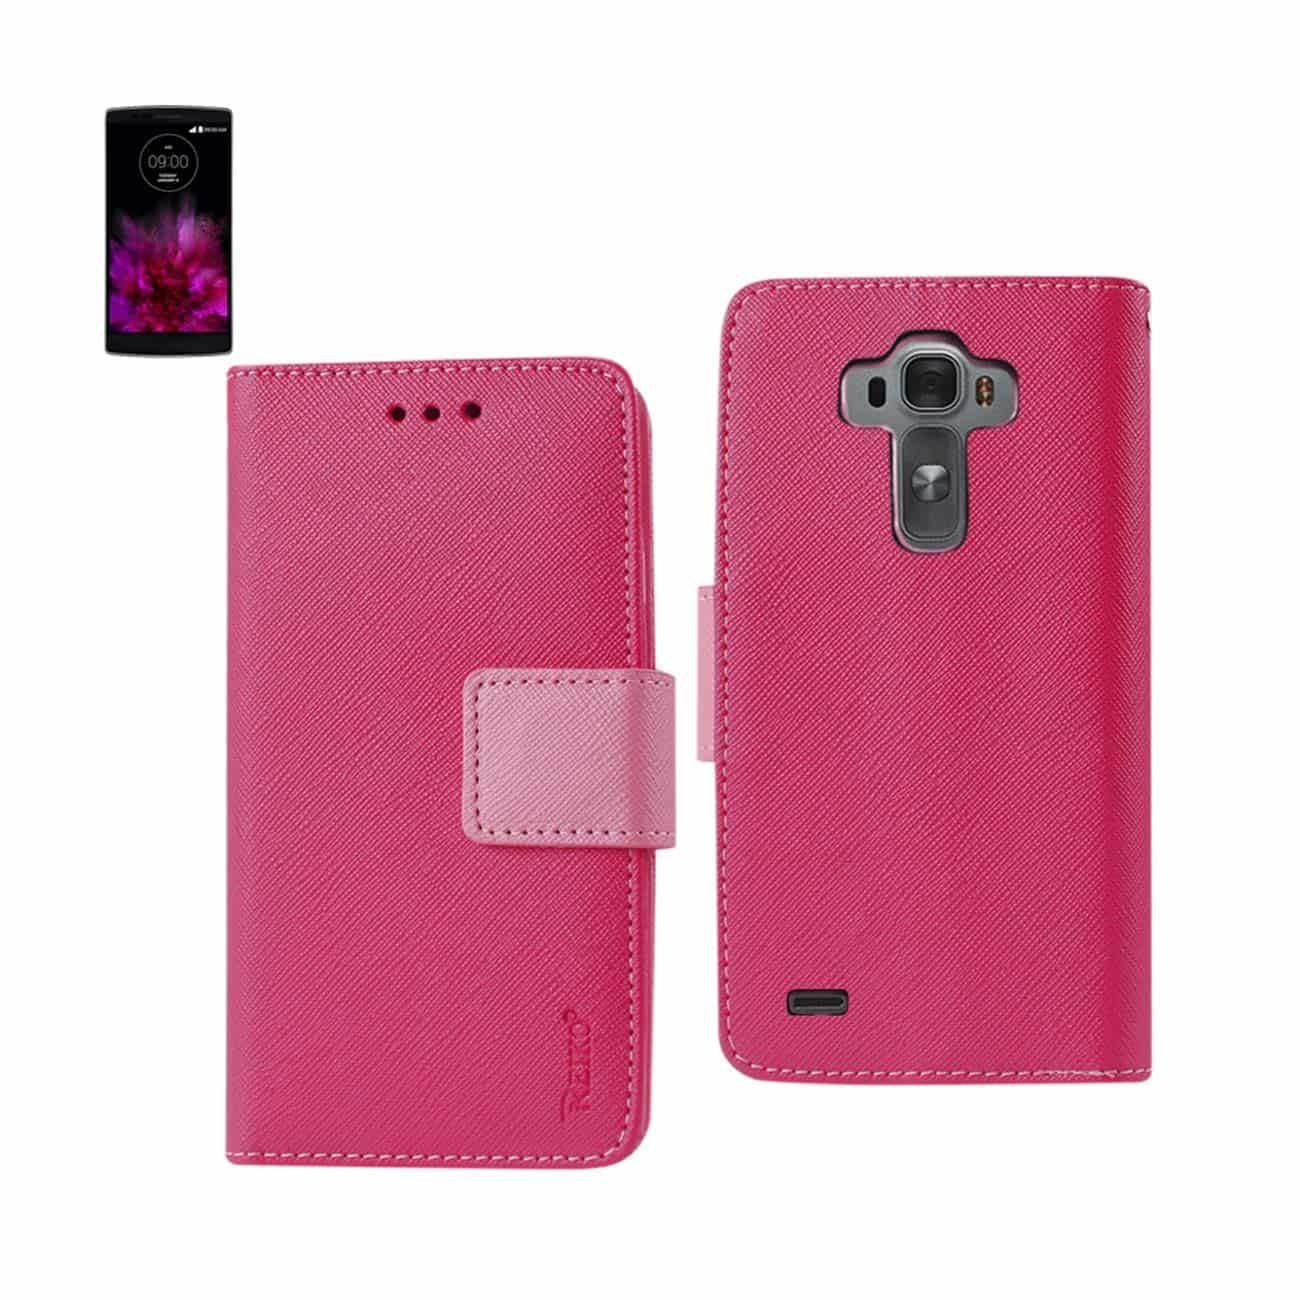 LG G FLEX 2 3-IN-1 WALLET CASE IN HOT PINK